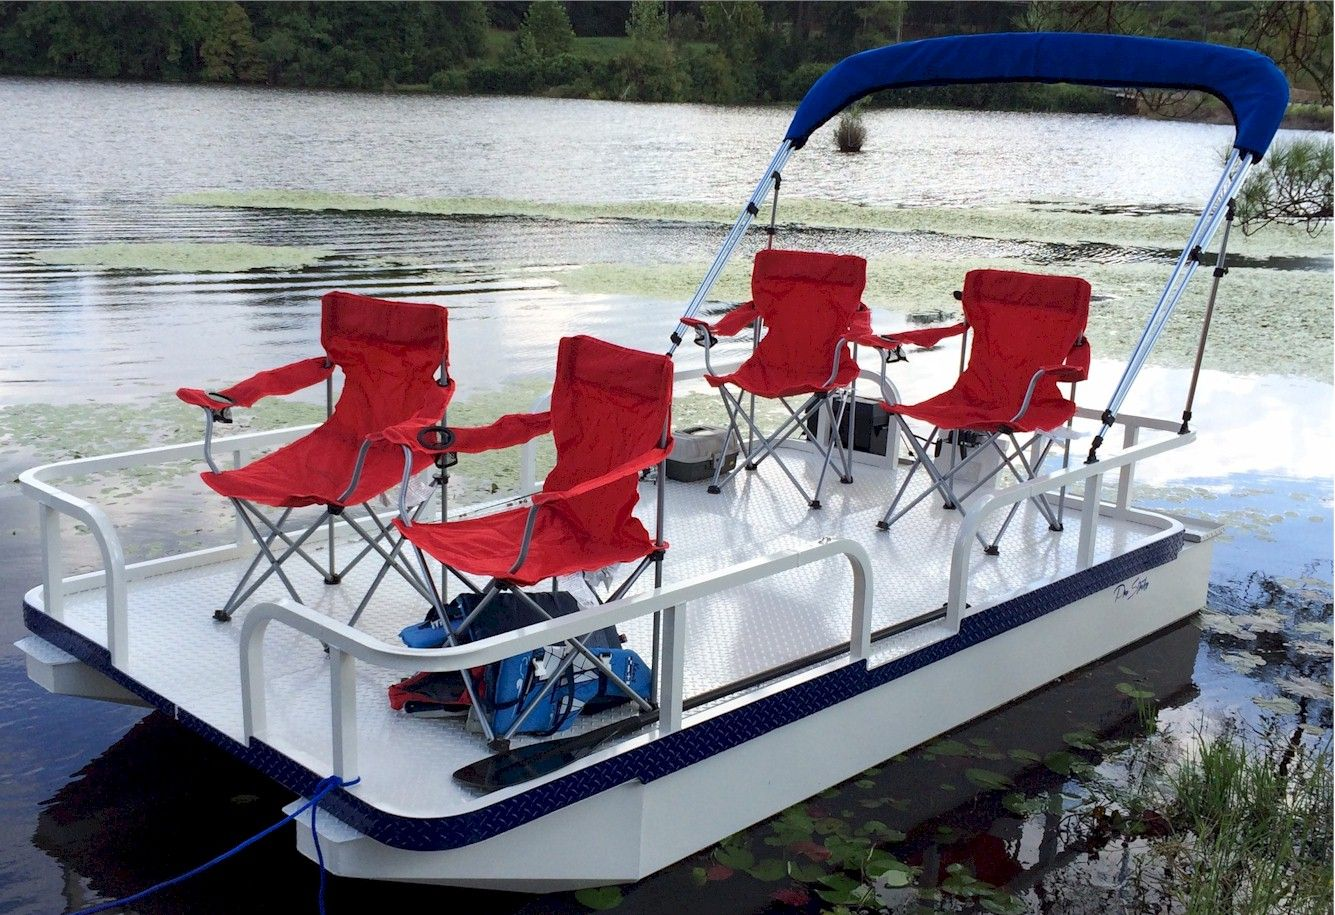 pro strike 126 exr mini pontoon boat cottage garden